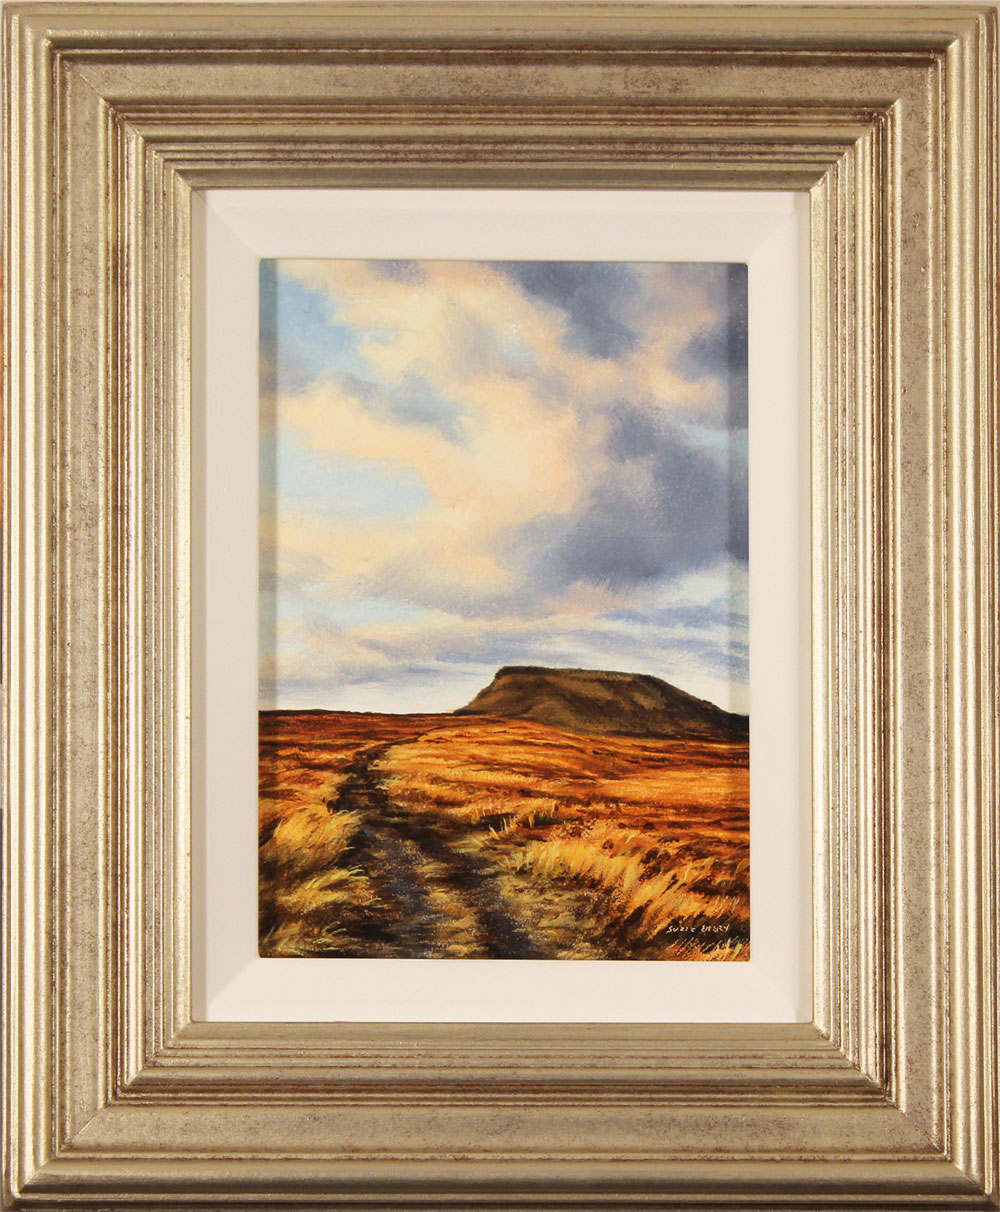 Suzie Emery, Original acrylic painting on board, Ingleborough, Yorkshire Dales. Click to enlarge